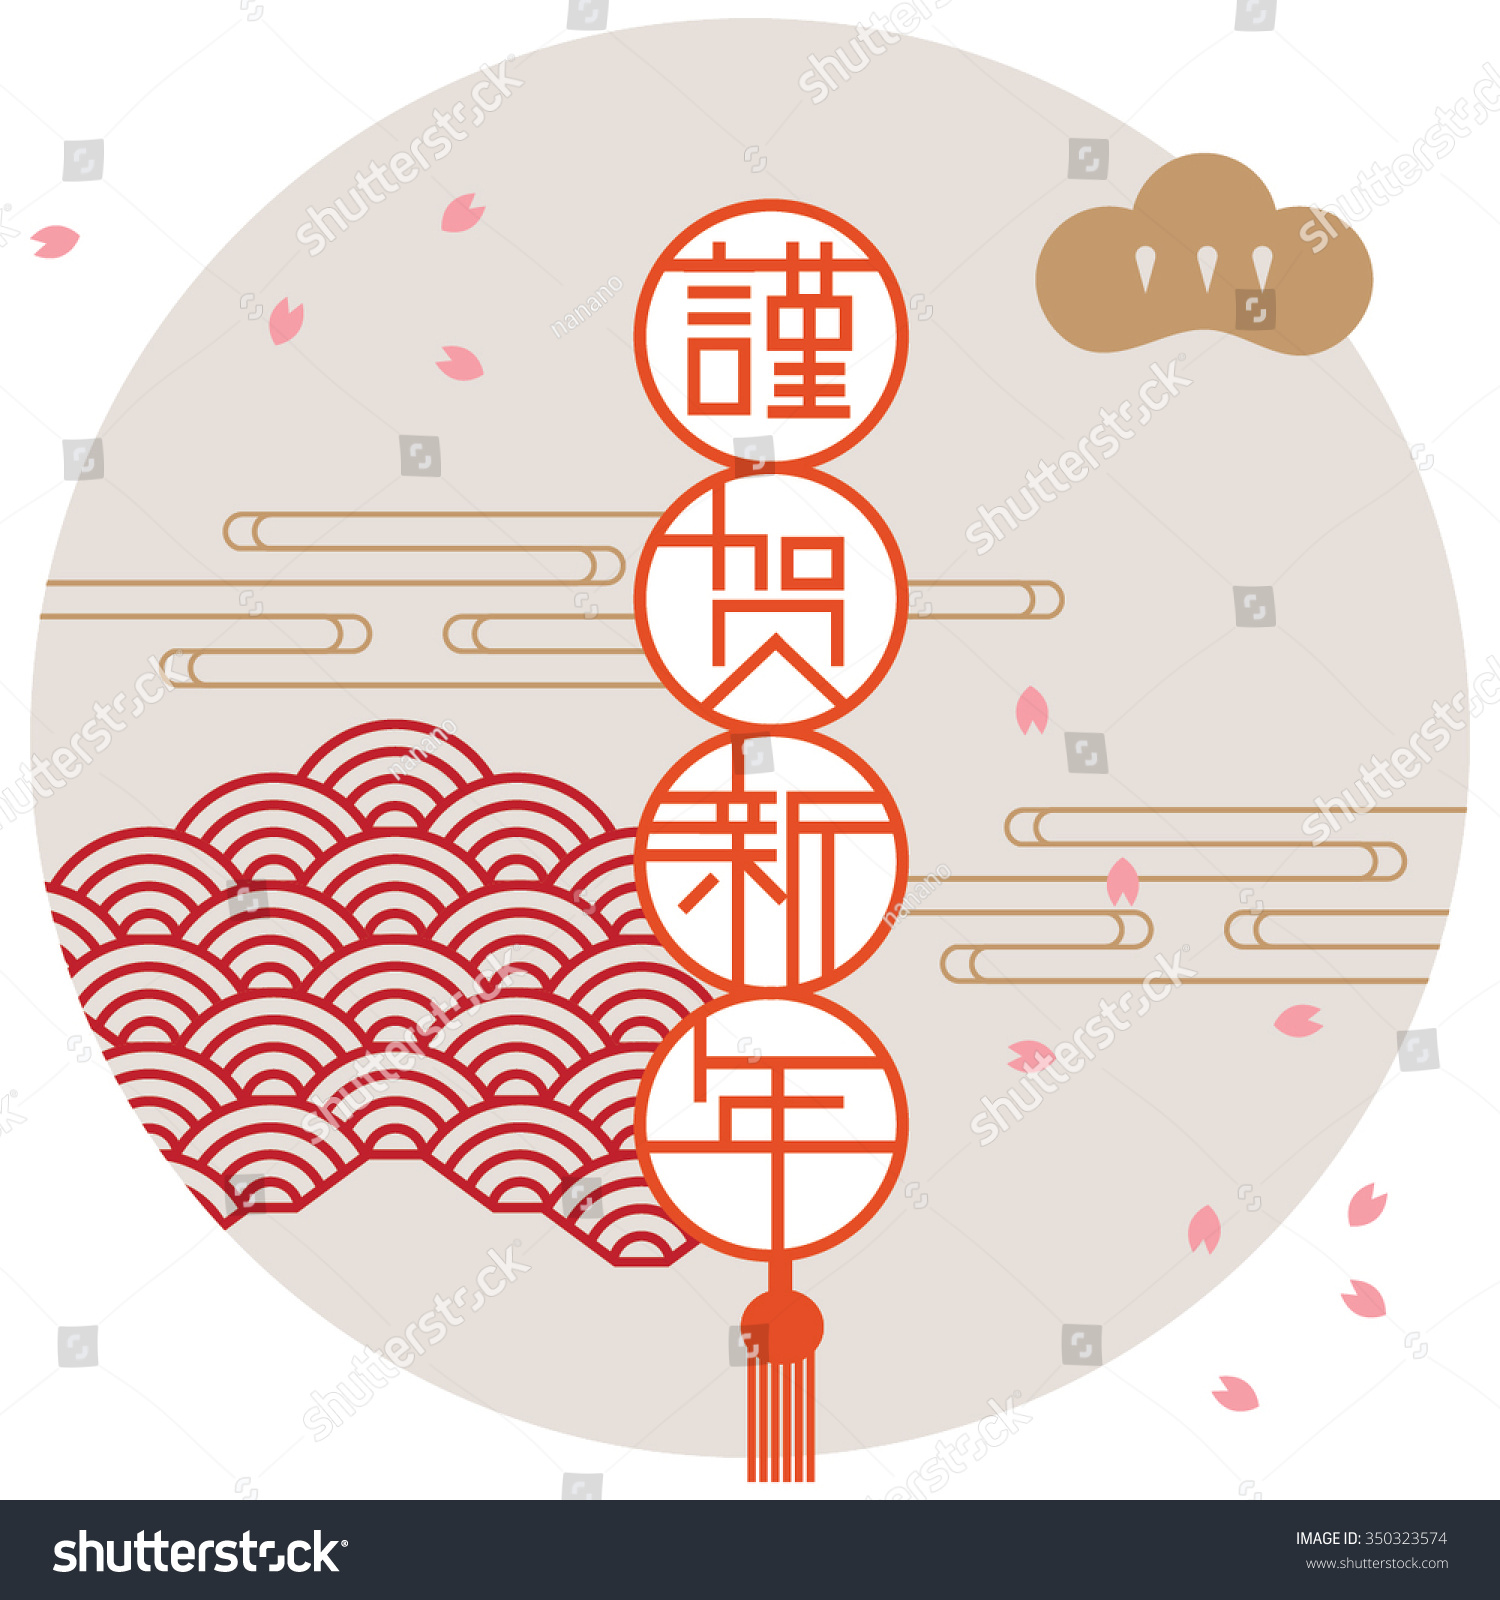 japanese new year greetings japanese element stock vector 350323574 shutterstock. Black Bedroom Furniture Sets. Home Design Ideas